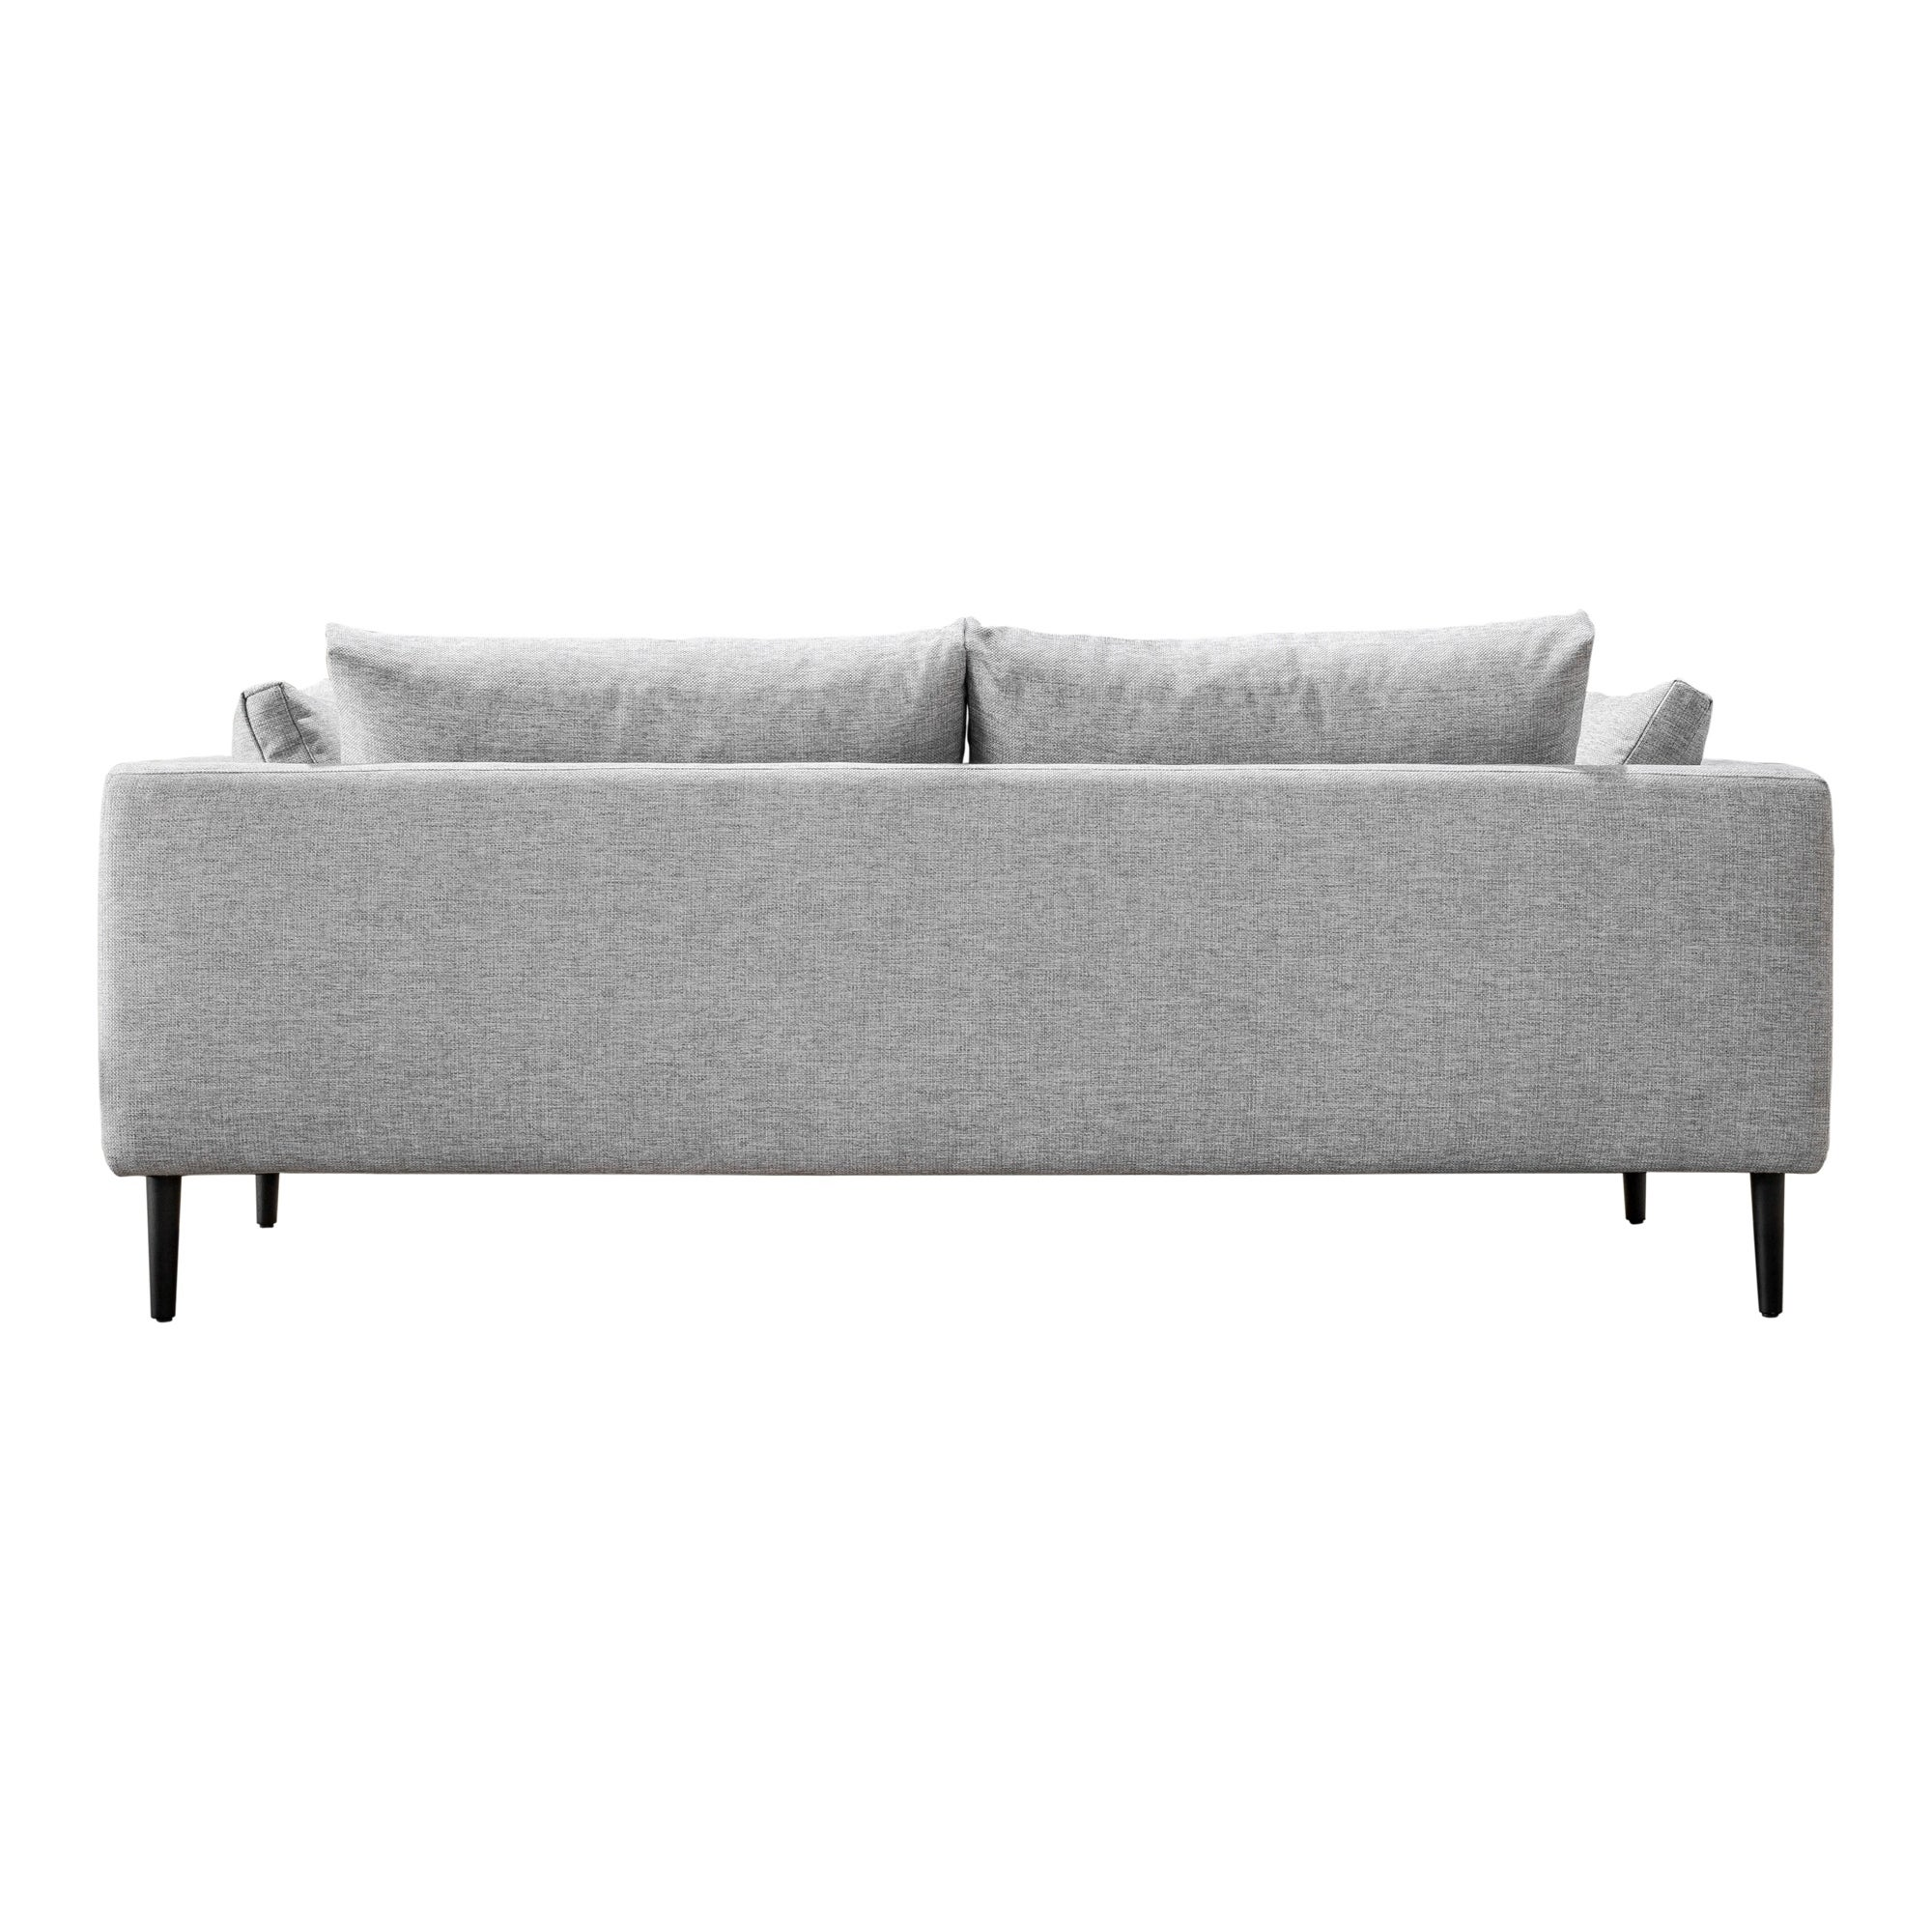 Aurelle Home Clean Line Contemporary Modern Sofa On Free Shipping Today 26041349